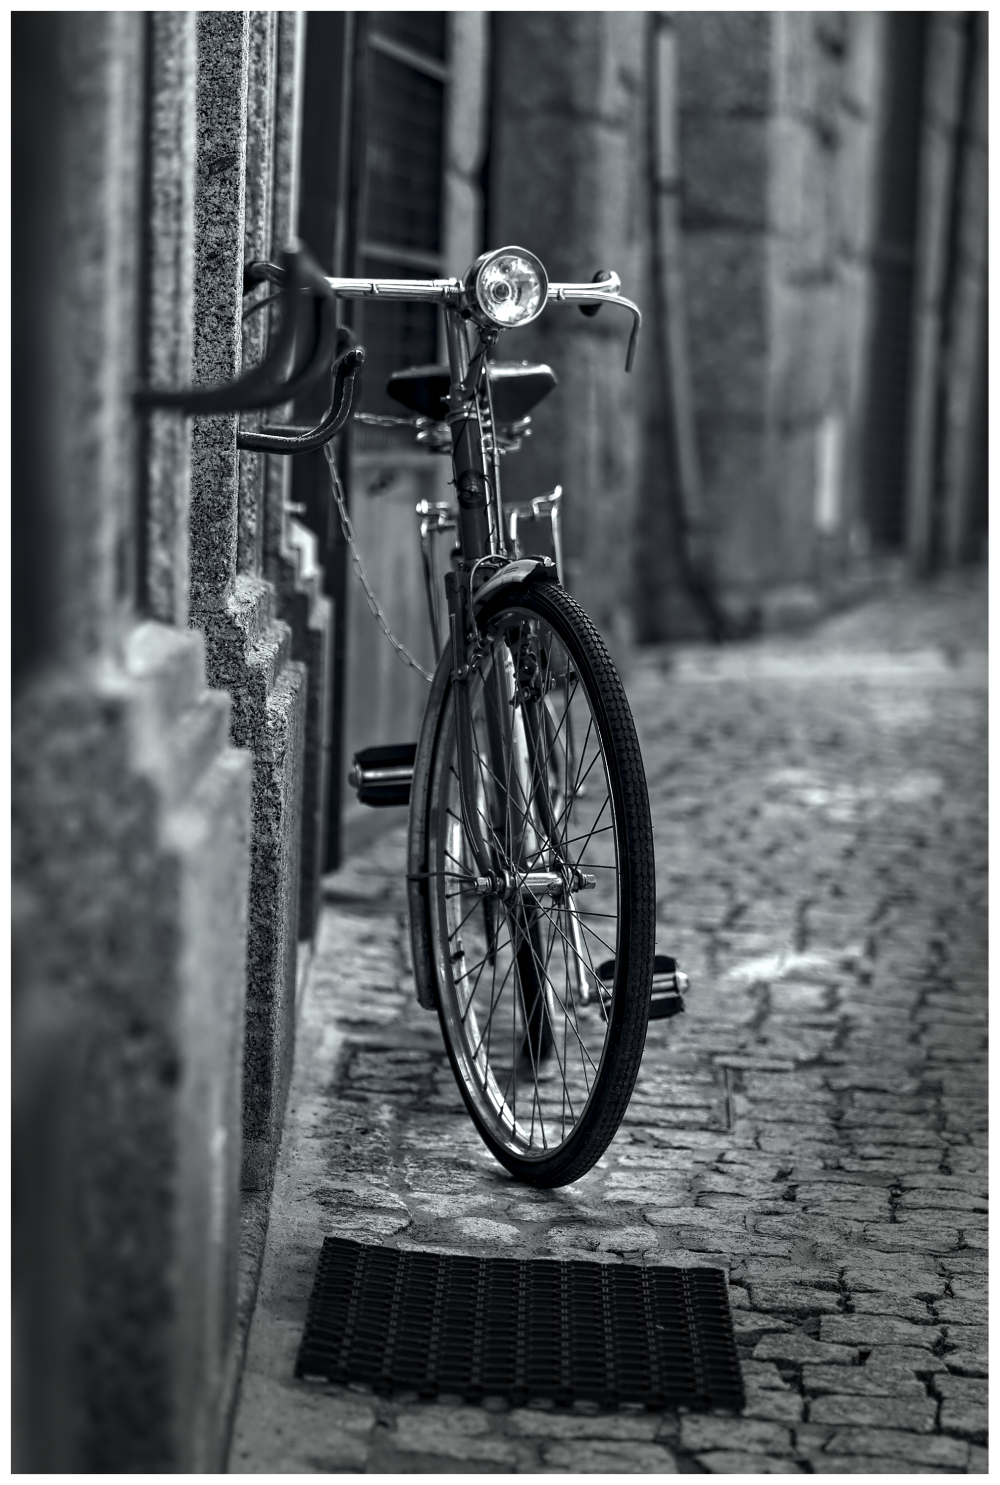 Old Bicycle black White Culture Street Photography